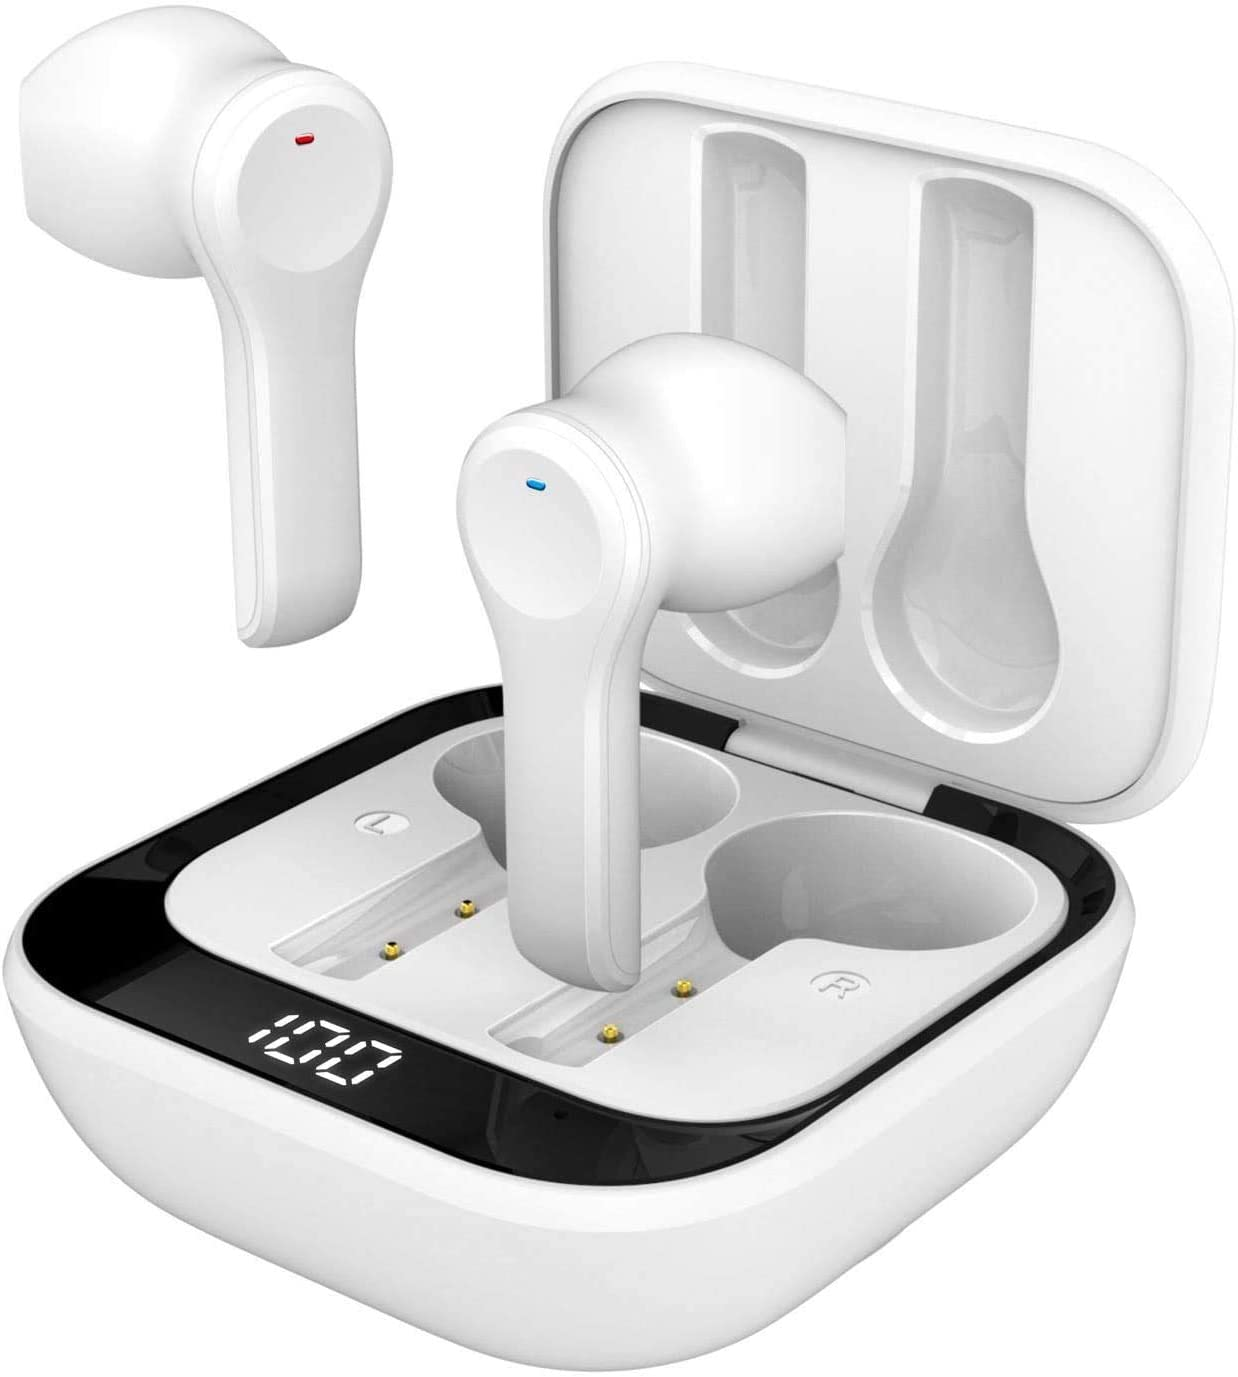 Wireless Earbuds, TWS Bluetooth 5.0 Headphones with Charging Case, Touch Control Waterproof Sports Earphone with Mic Stereo Bluetooth Headset Type-C Charging 24H Playback for Home,Office (White)